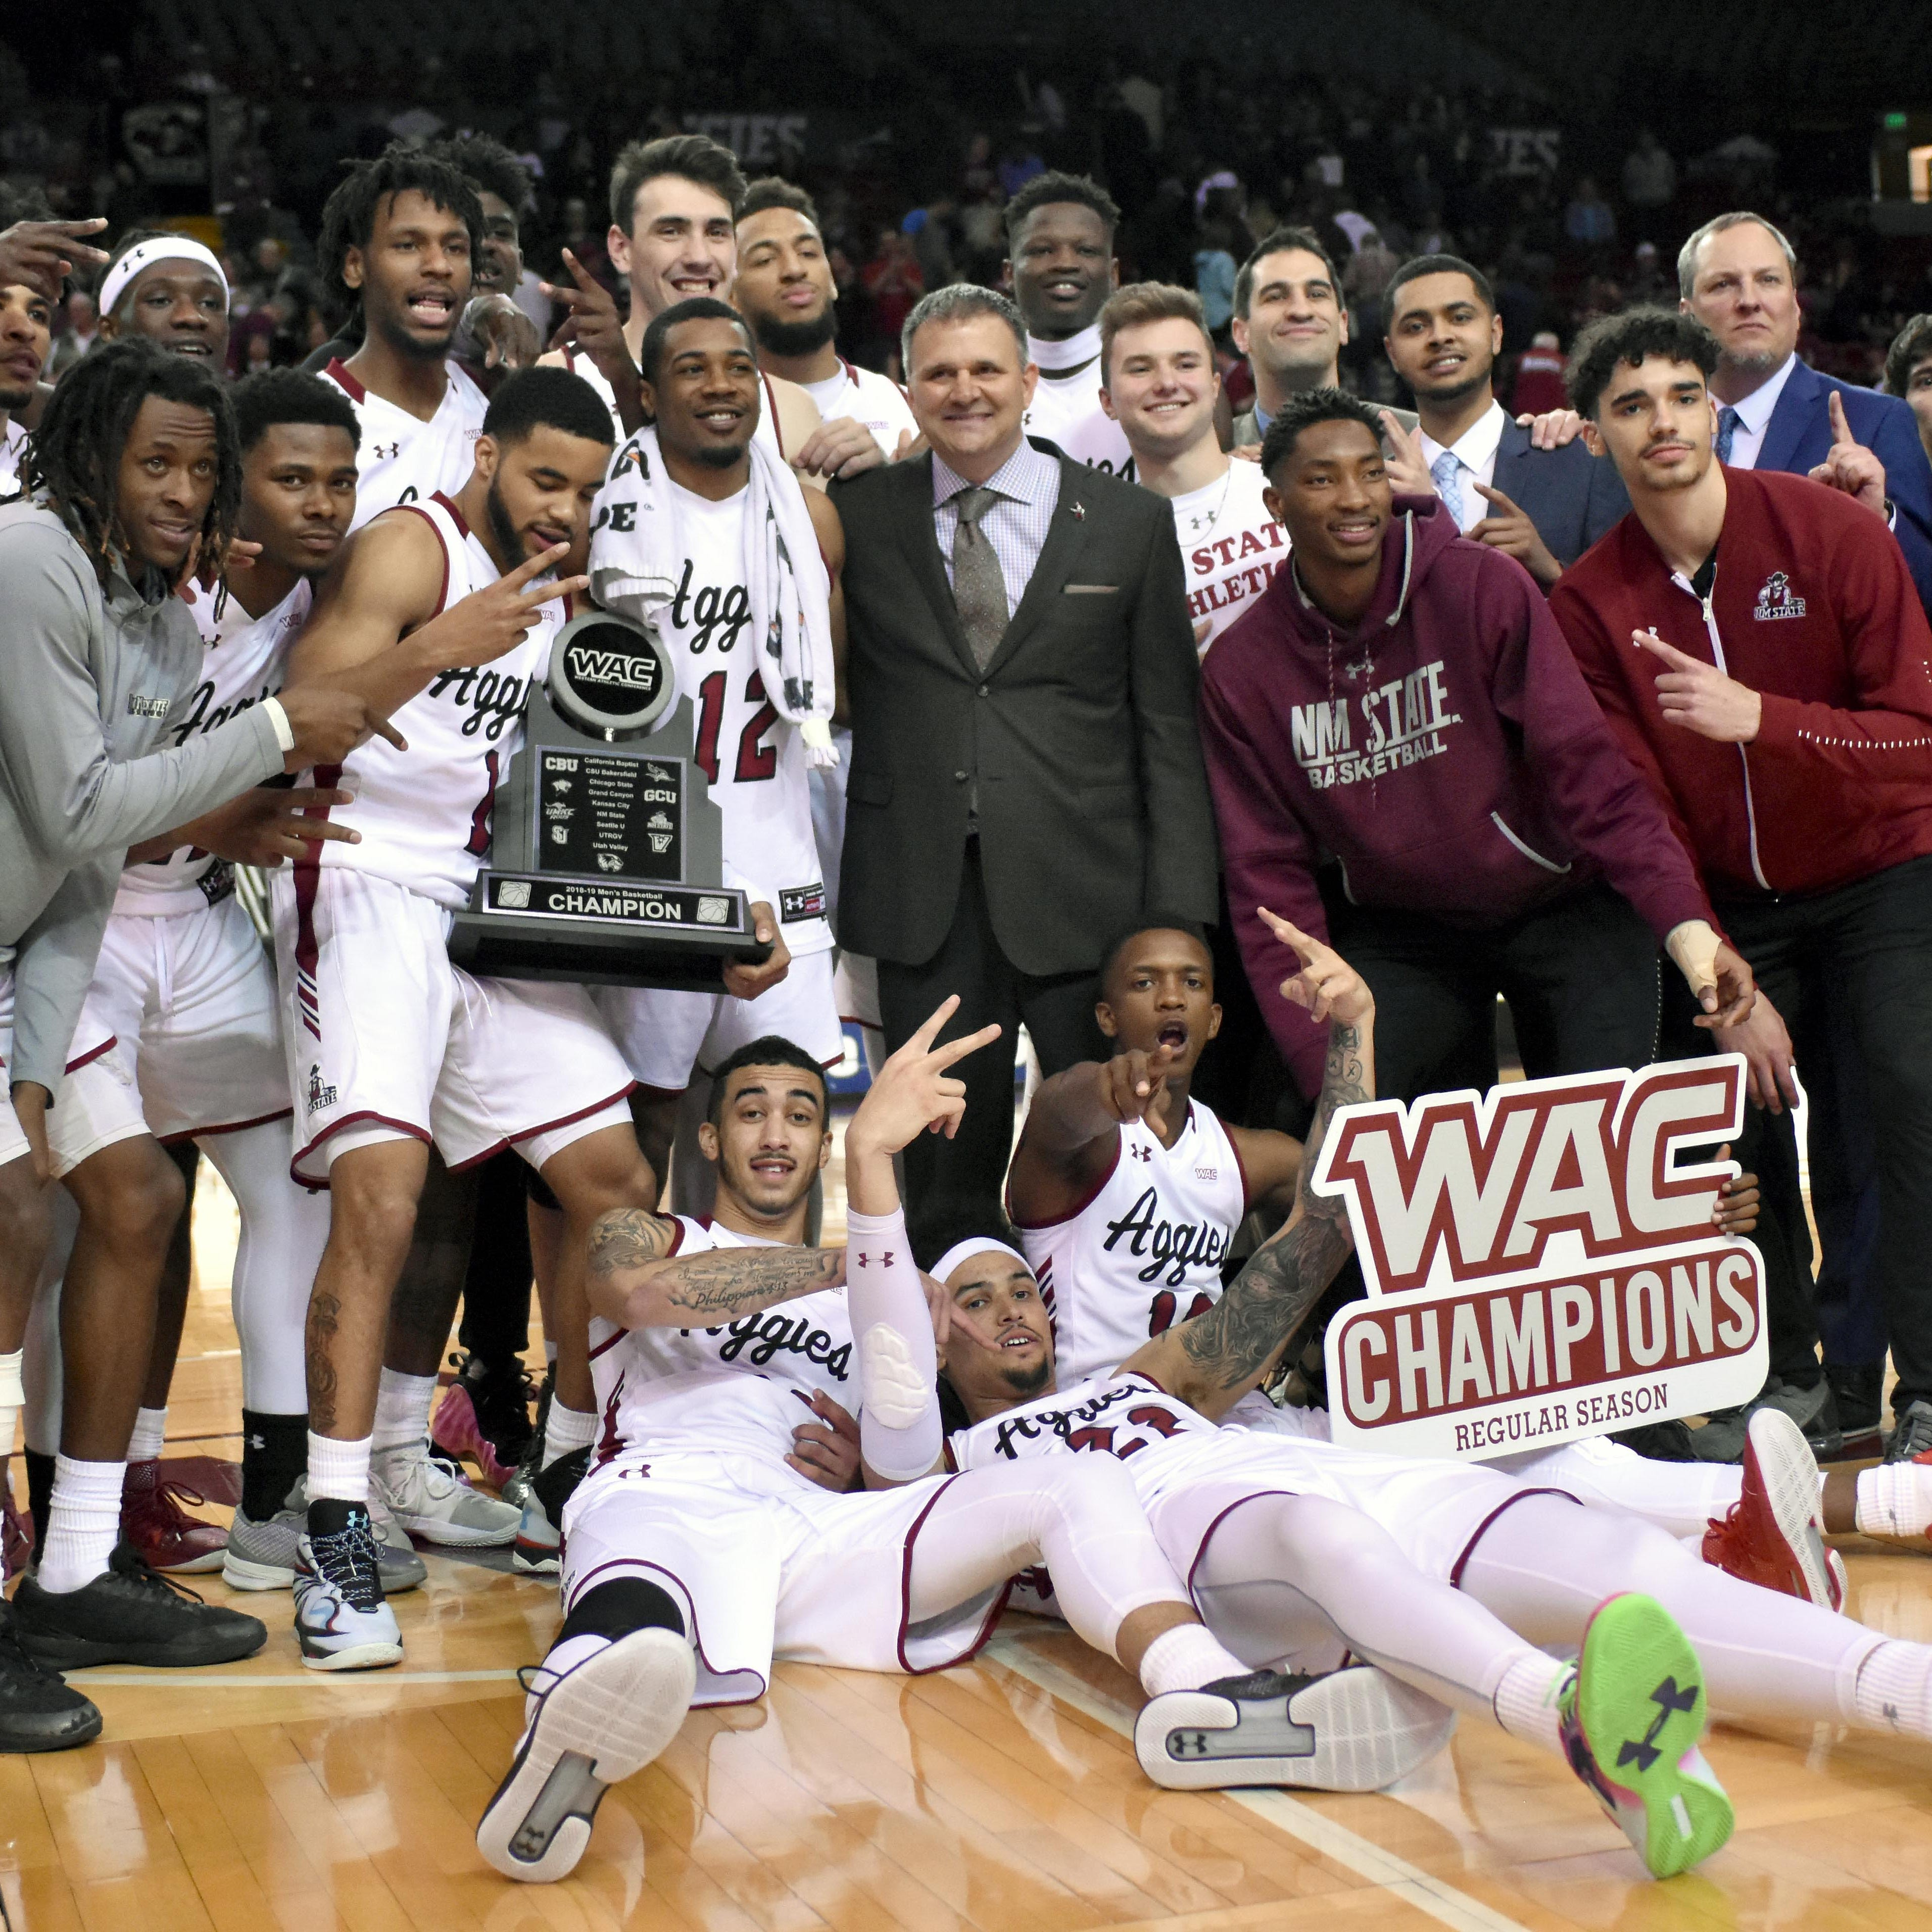 New Mexico State's loss in last year's NCAA Tournament prompts changes to style of play